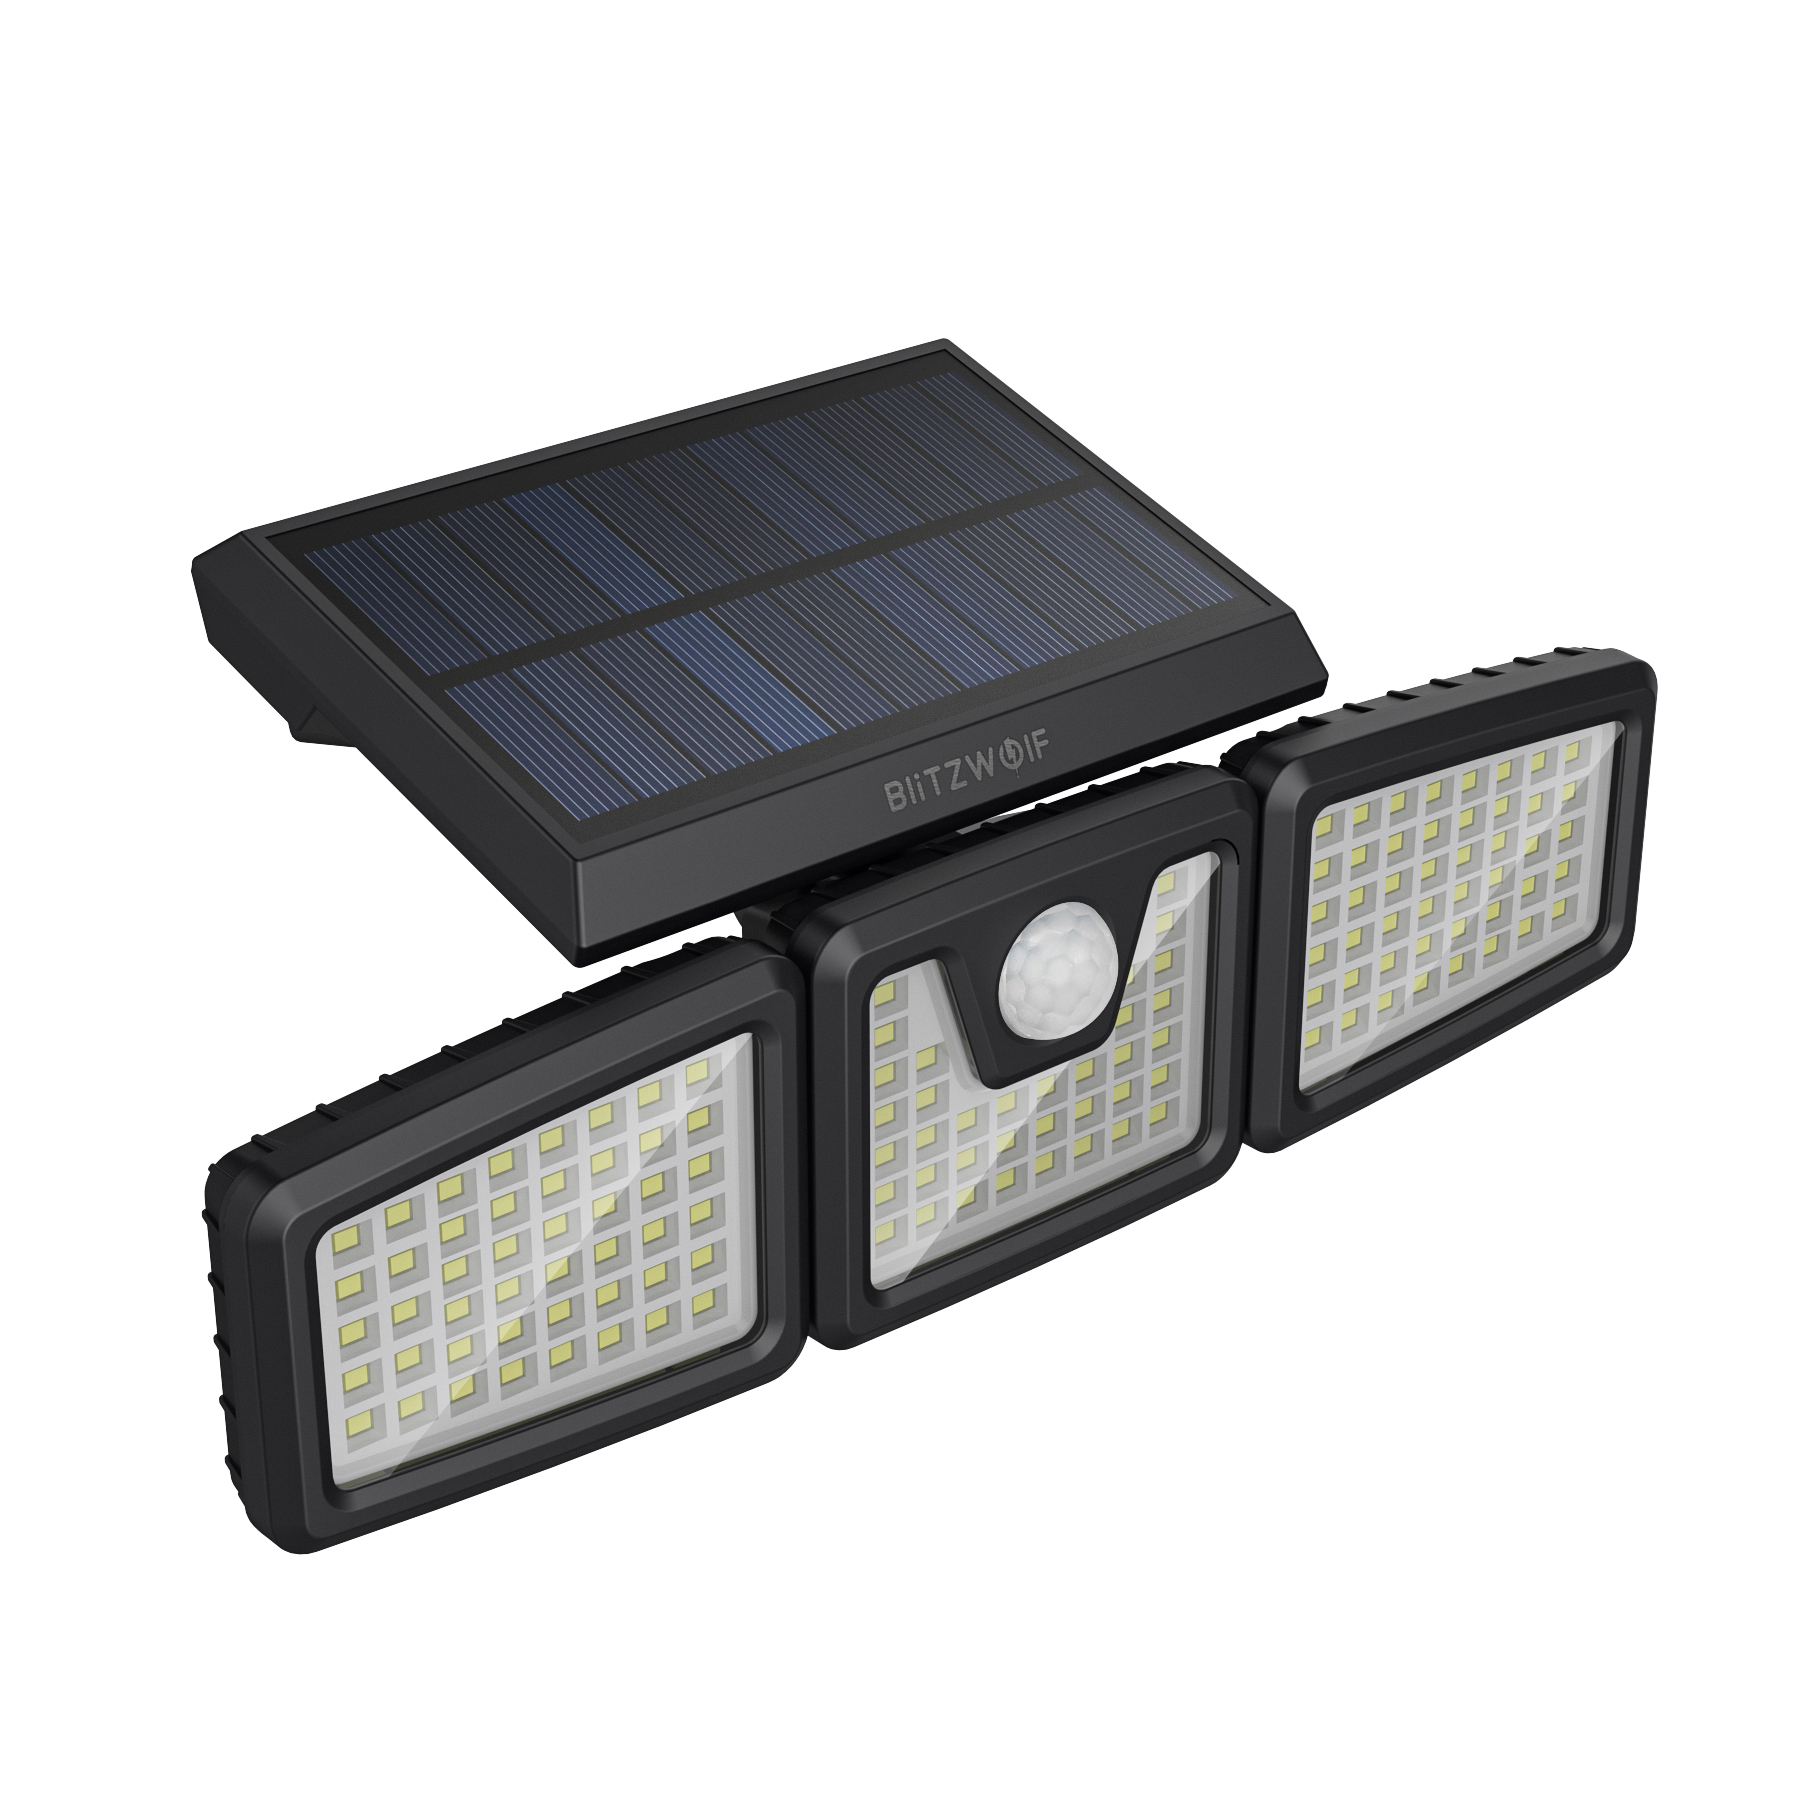 3 Heads Adjustable Solar Sensor Flood Light